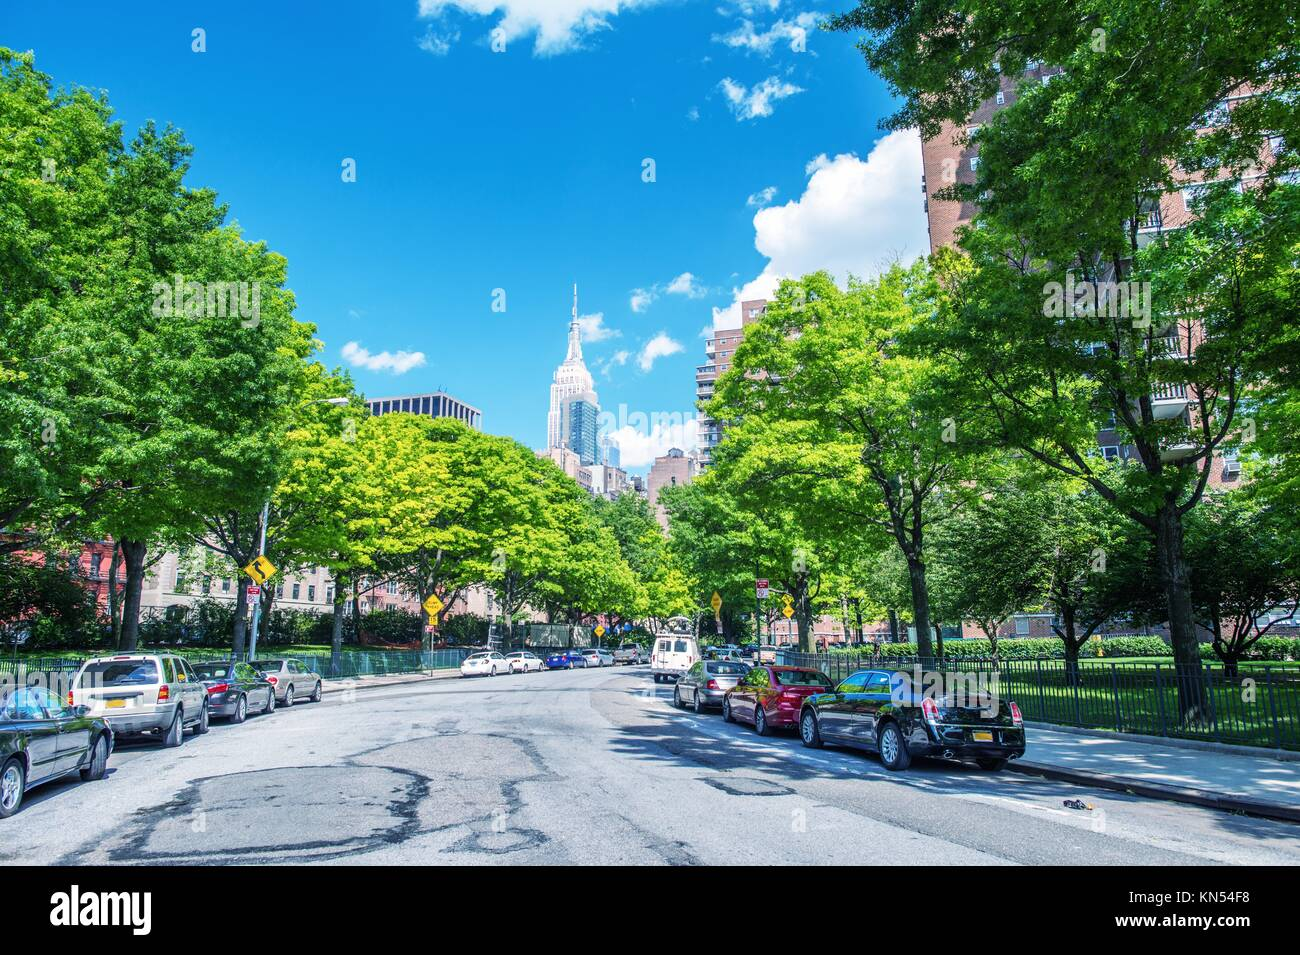 Beutiful view of New York skyline and avenue from Chelsea Park area - Manhattan in summer season. Stock Photo